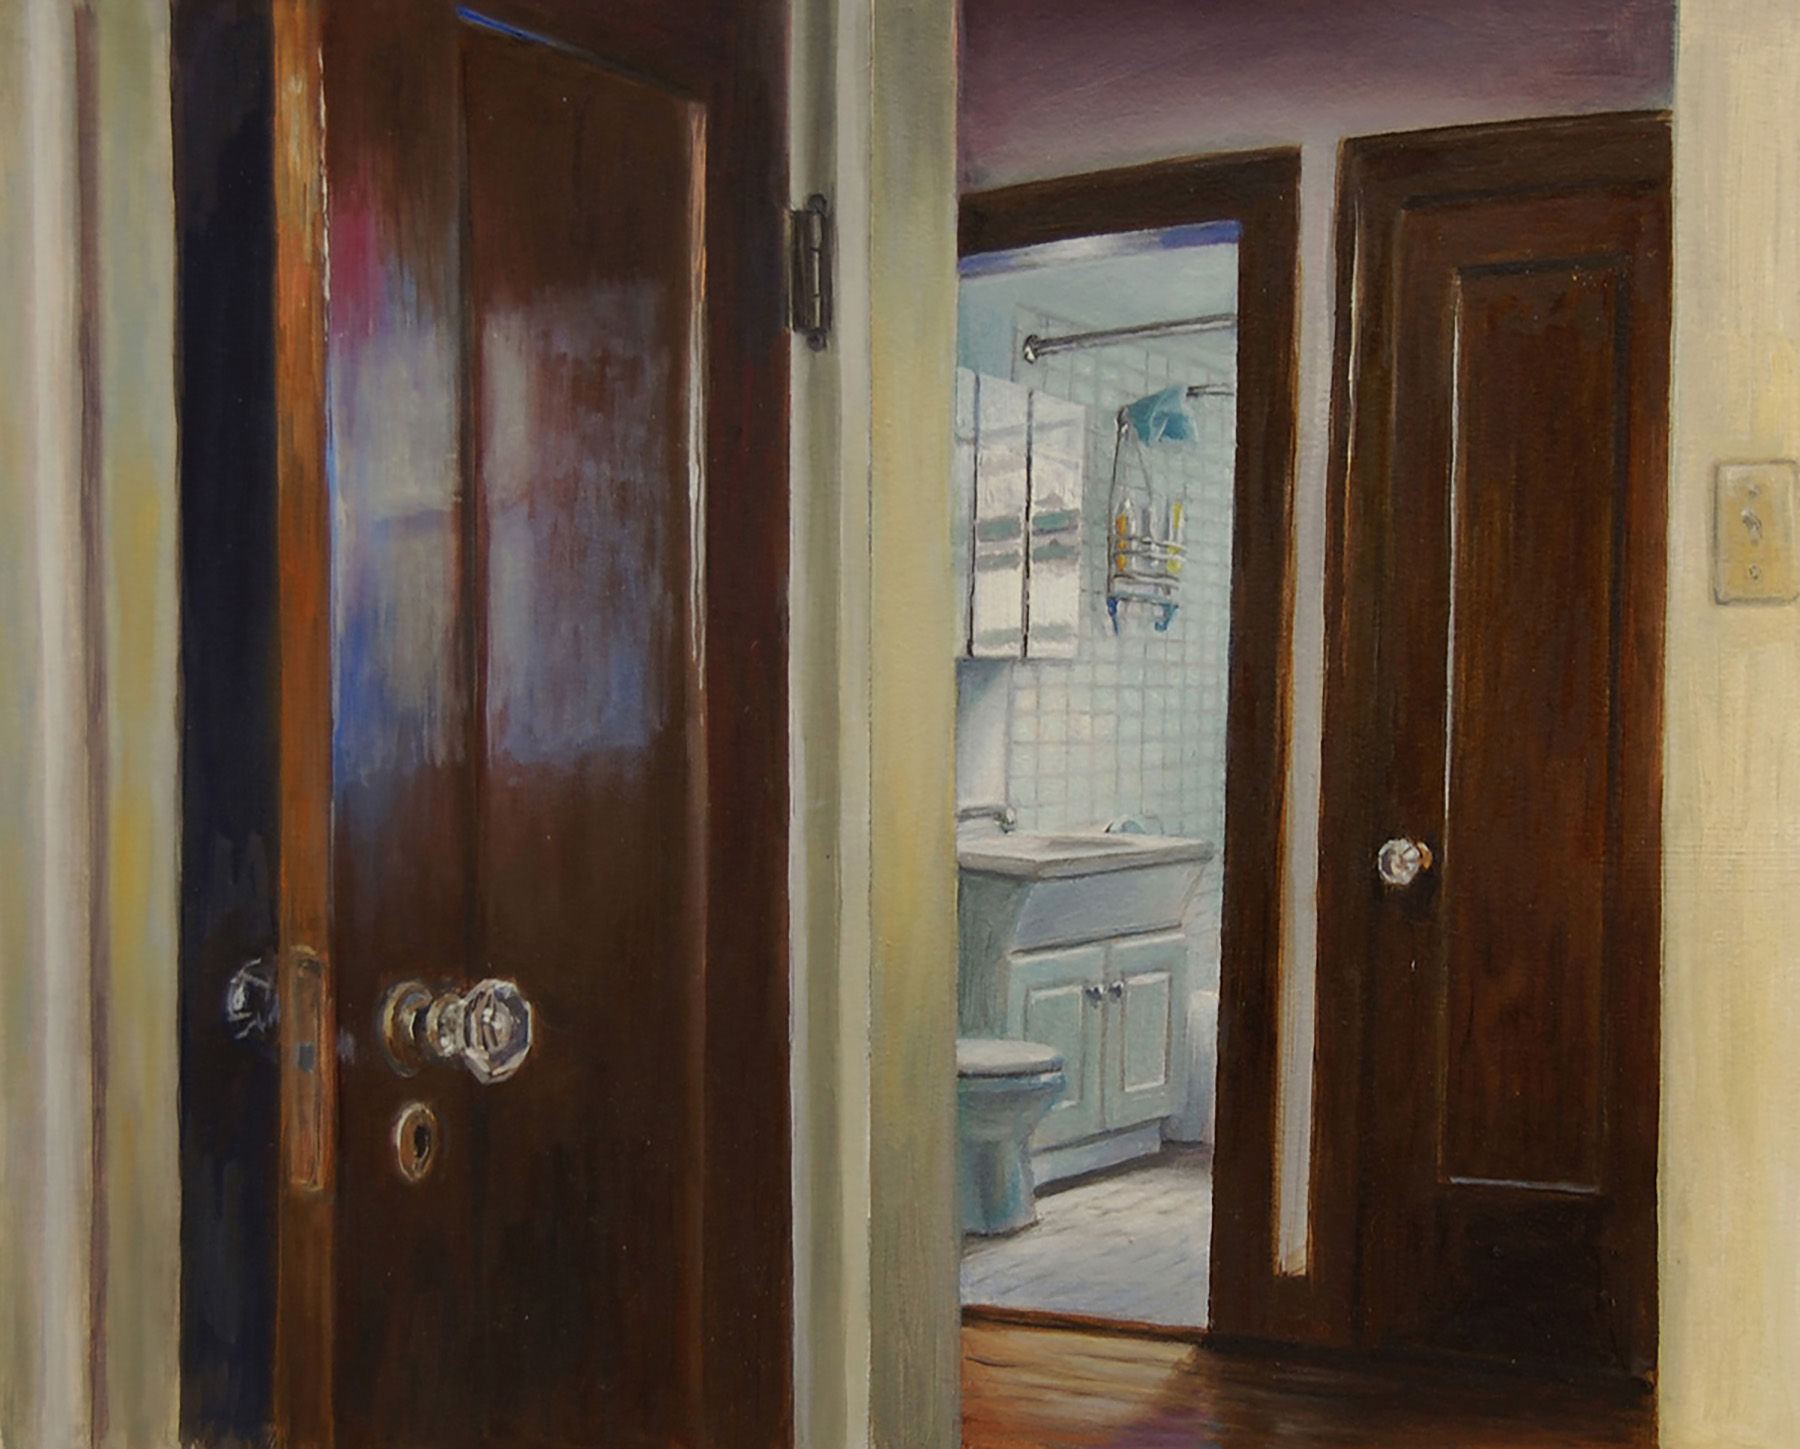 Closet Doors and Bathroom   2011  Oil on paper  12 x 15 inches